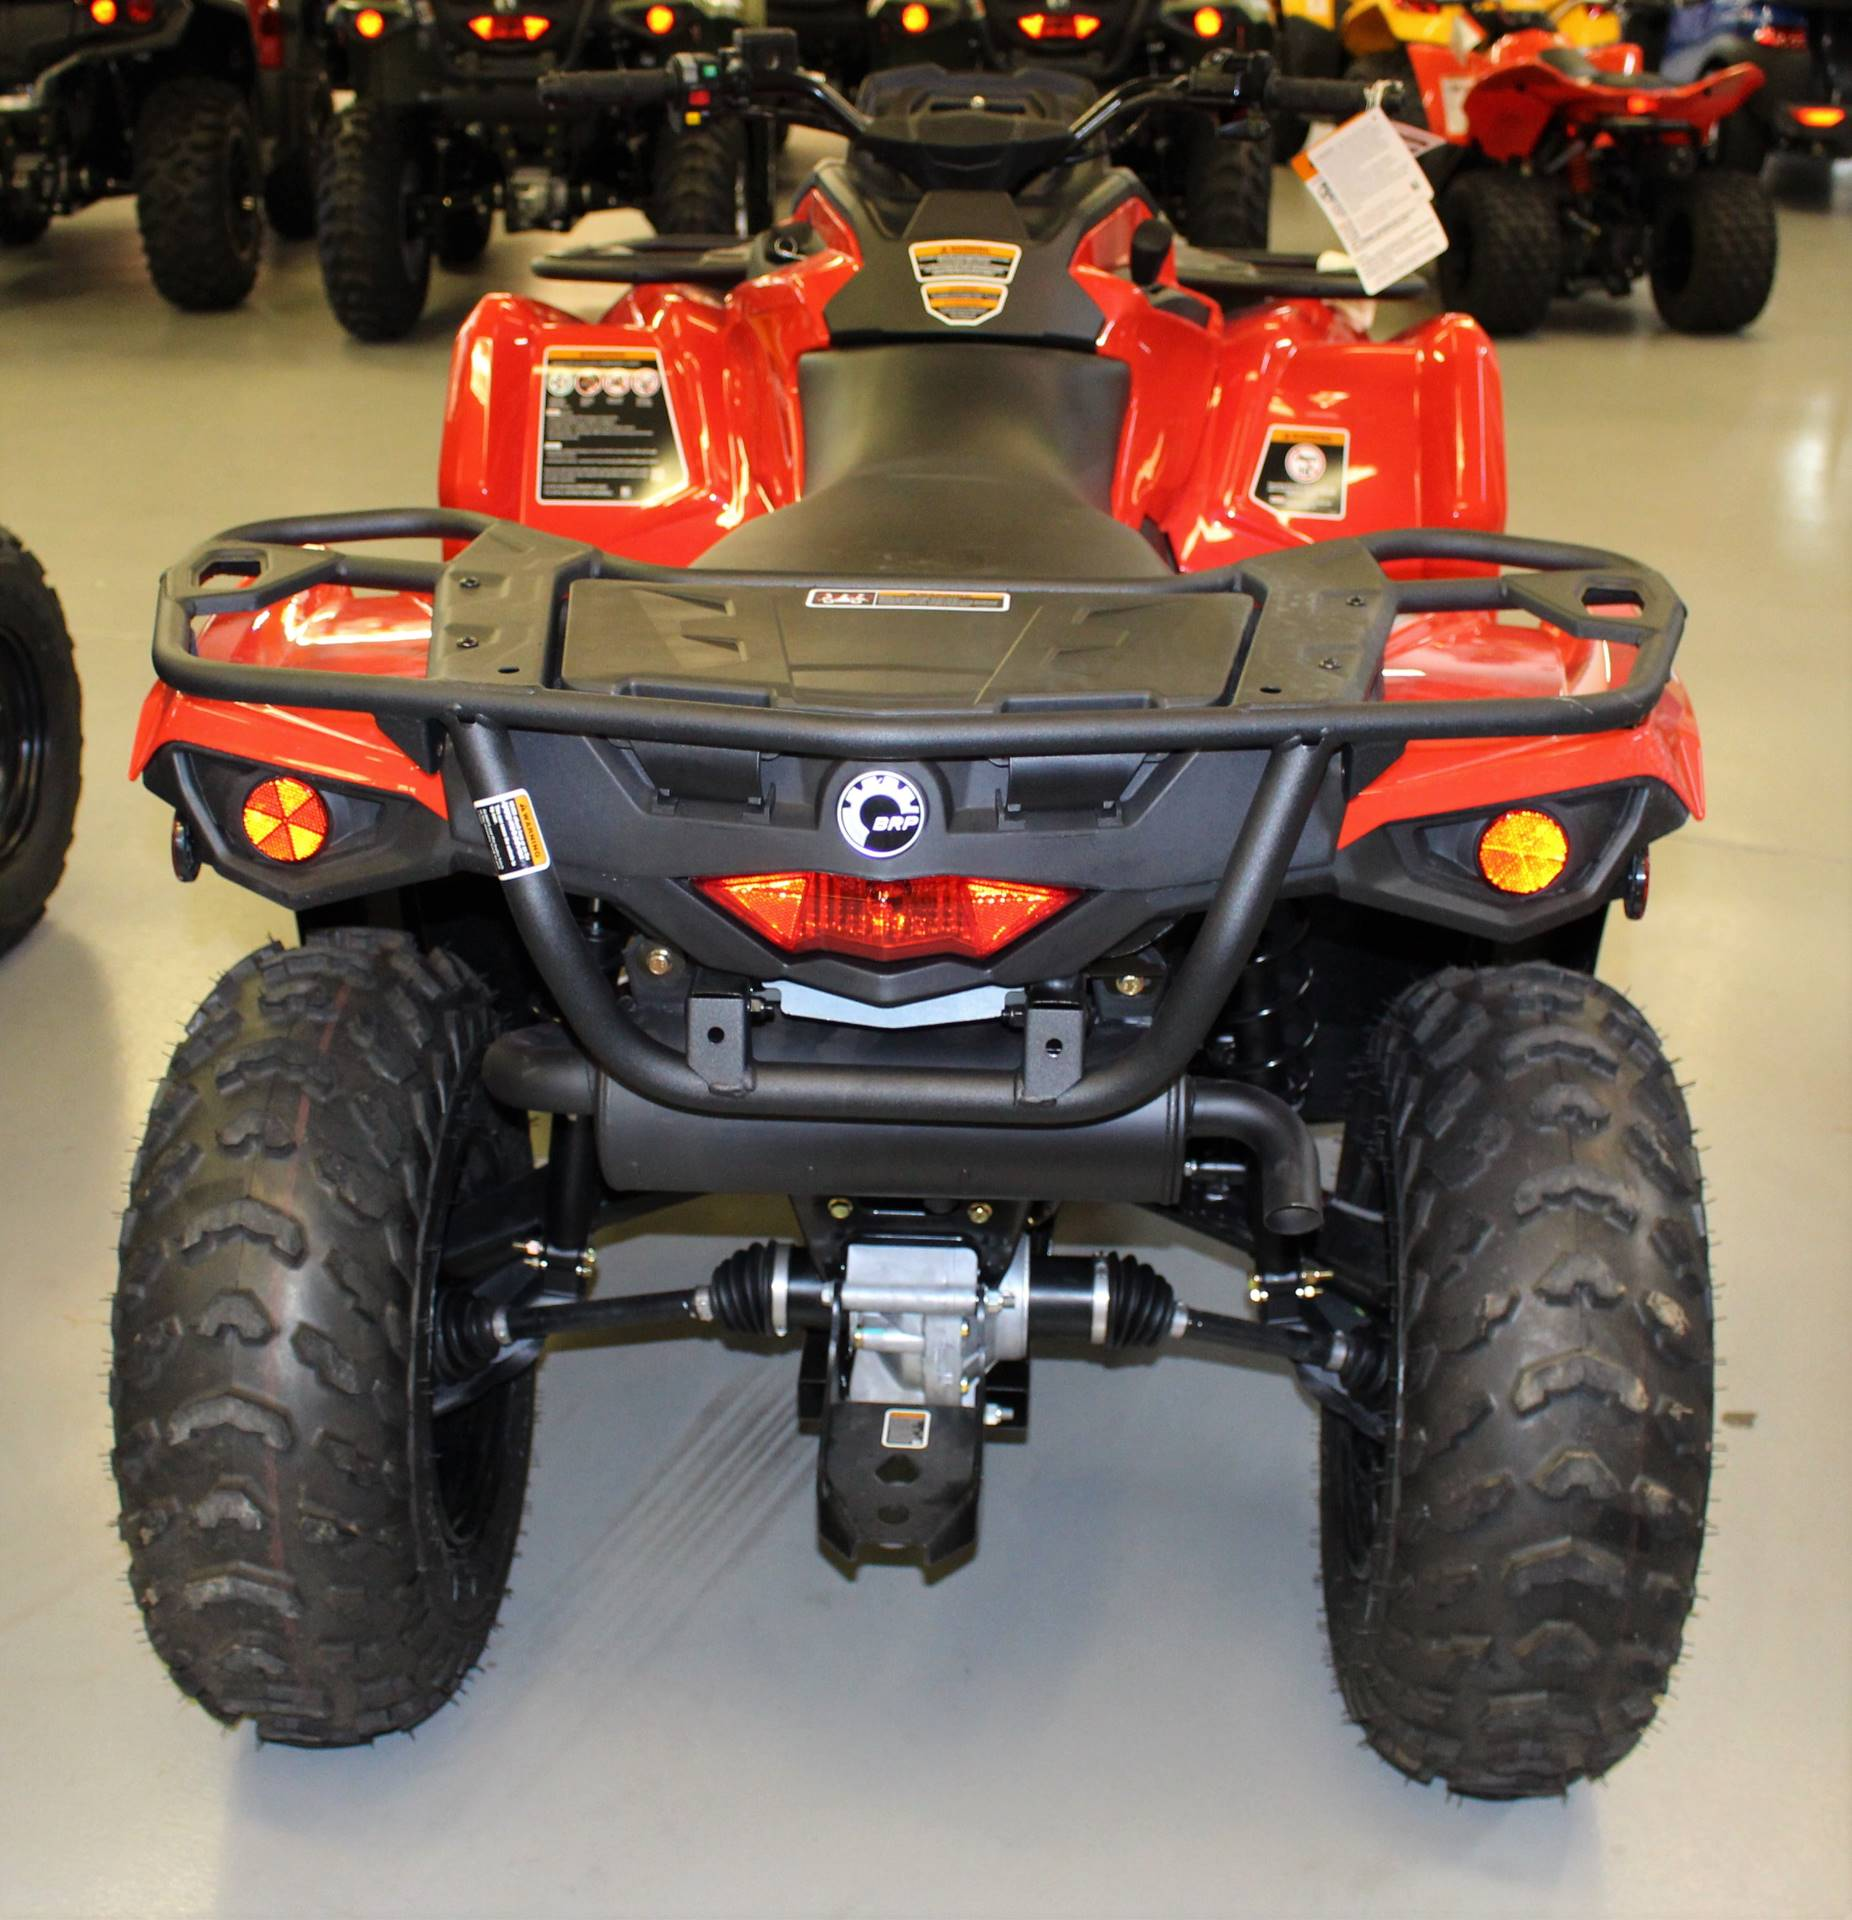 2019 Can-Am Outlander 570 in Ruckersville, Virginia - Photo 3